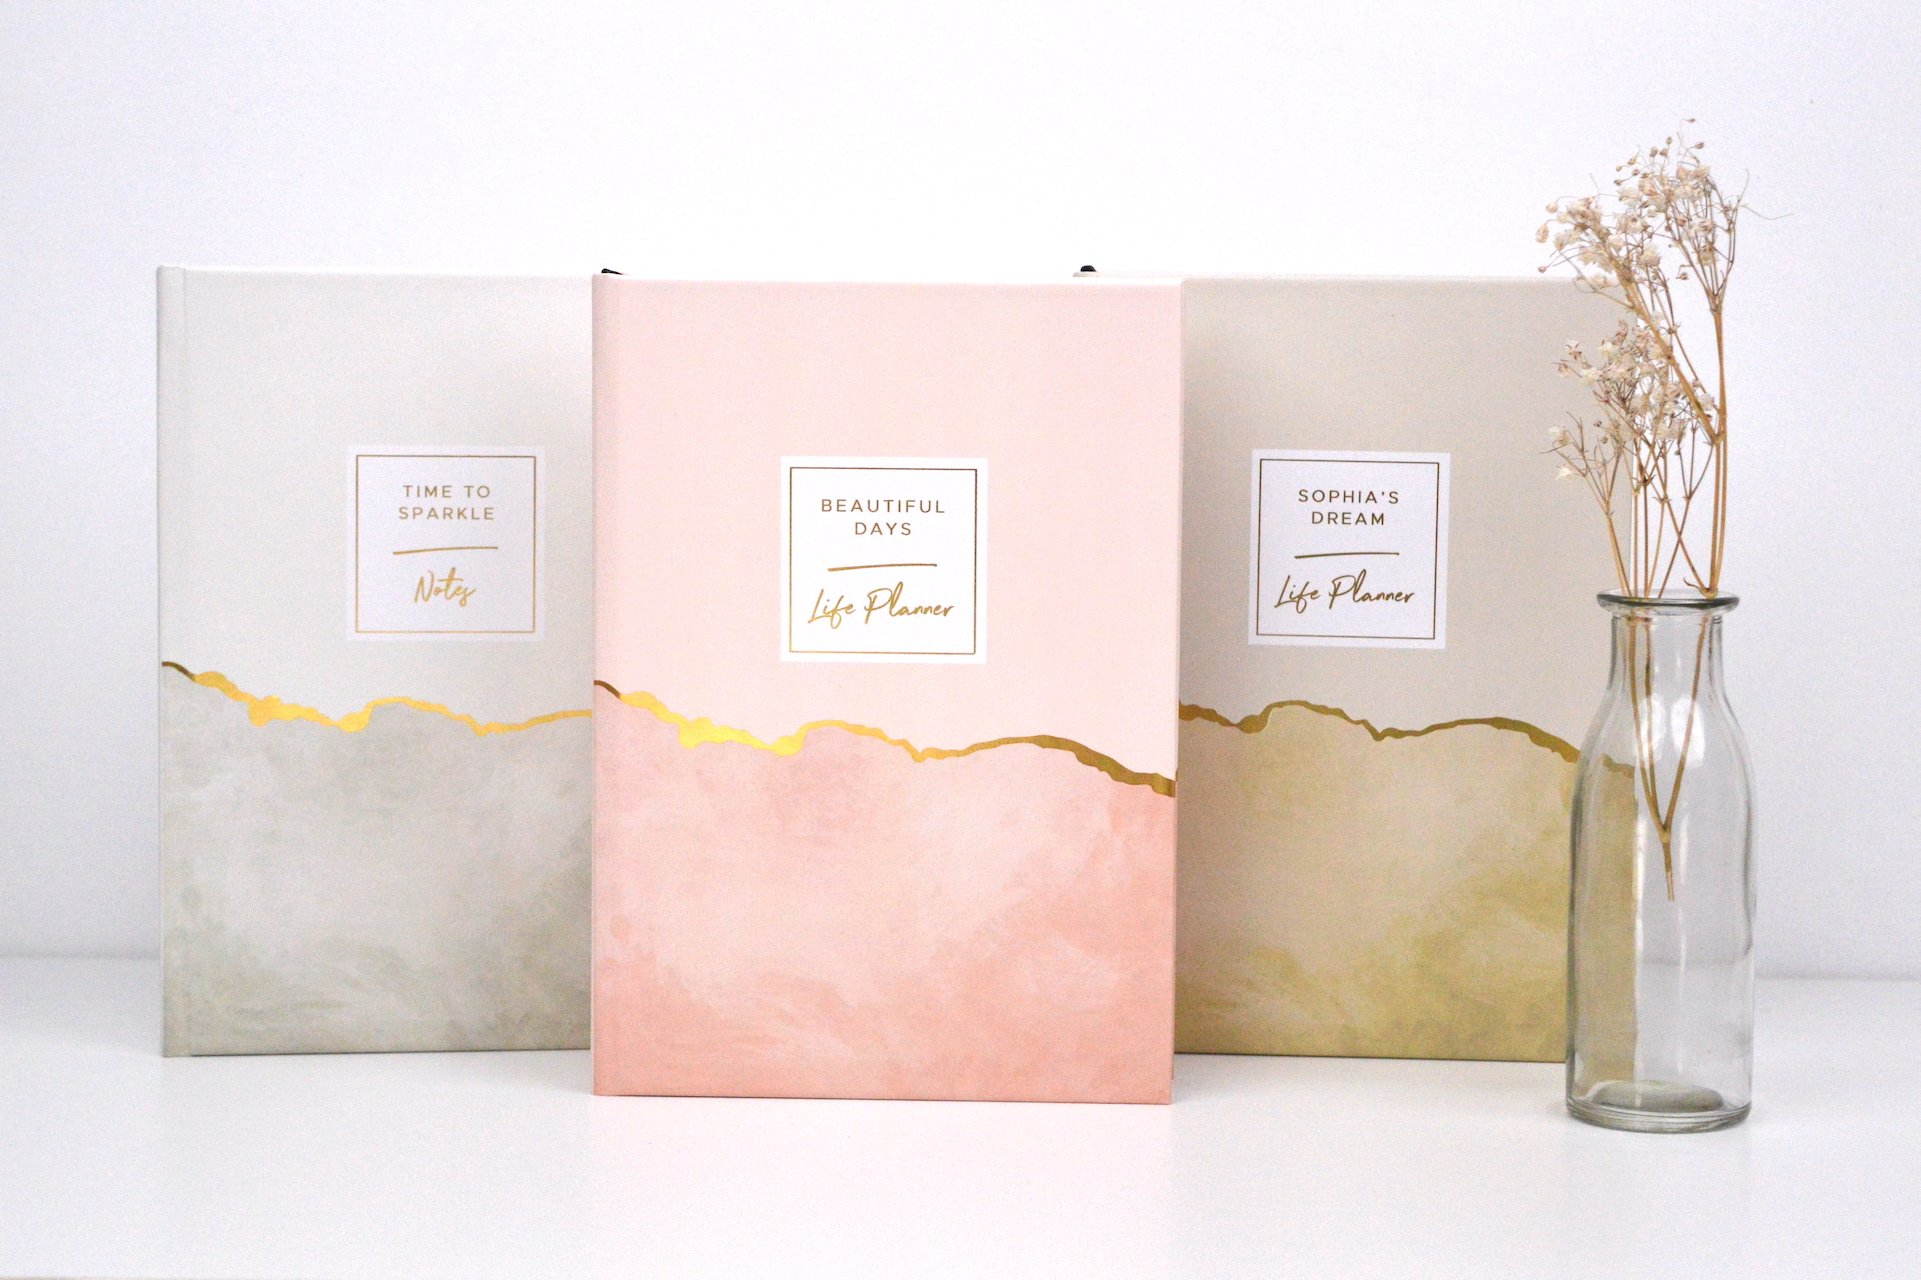 Original Life Personalised Notebook Planner Goal Dream Productivity Marble Collection Gold Foil